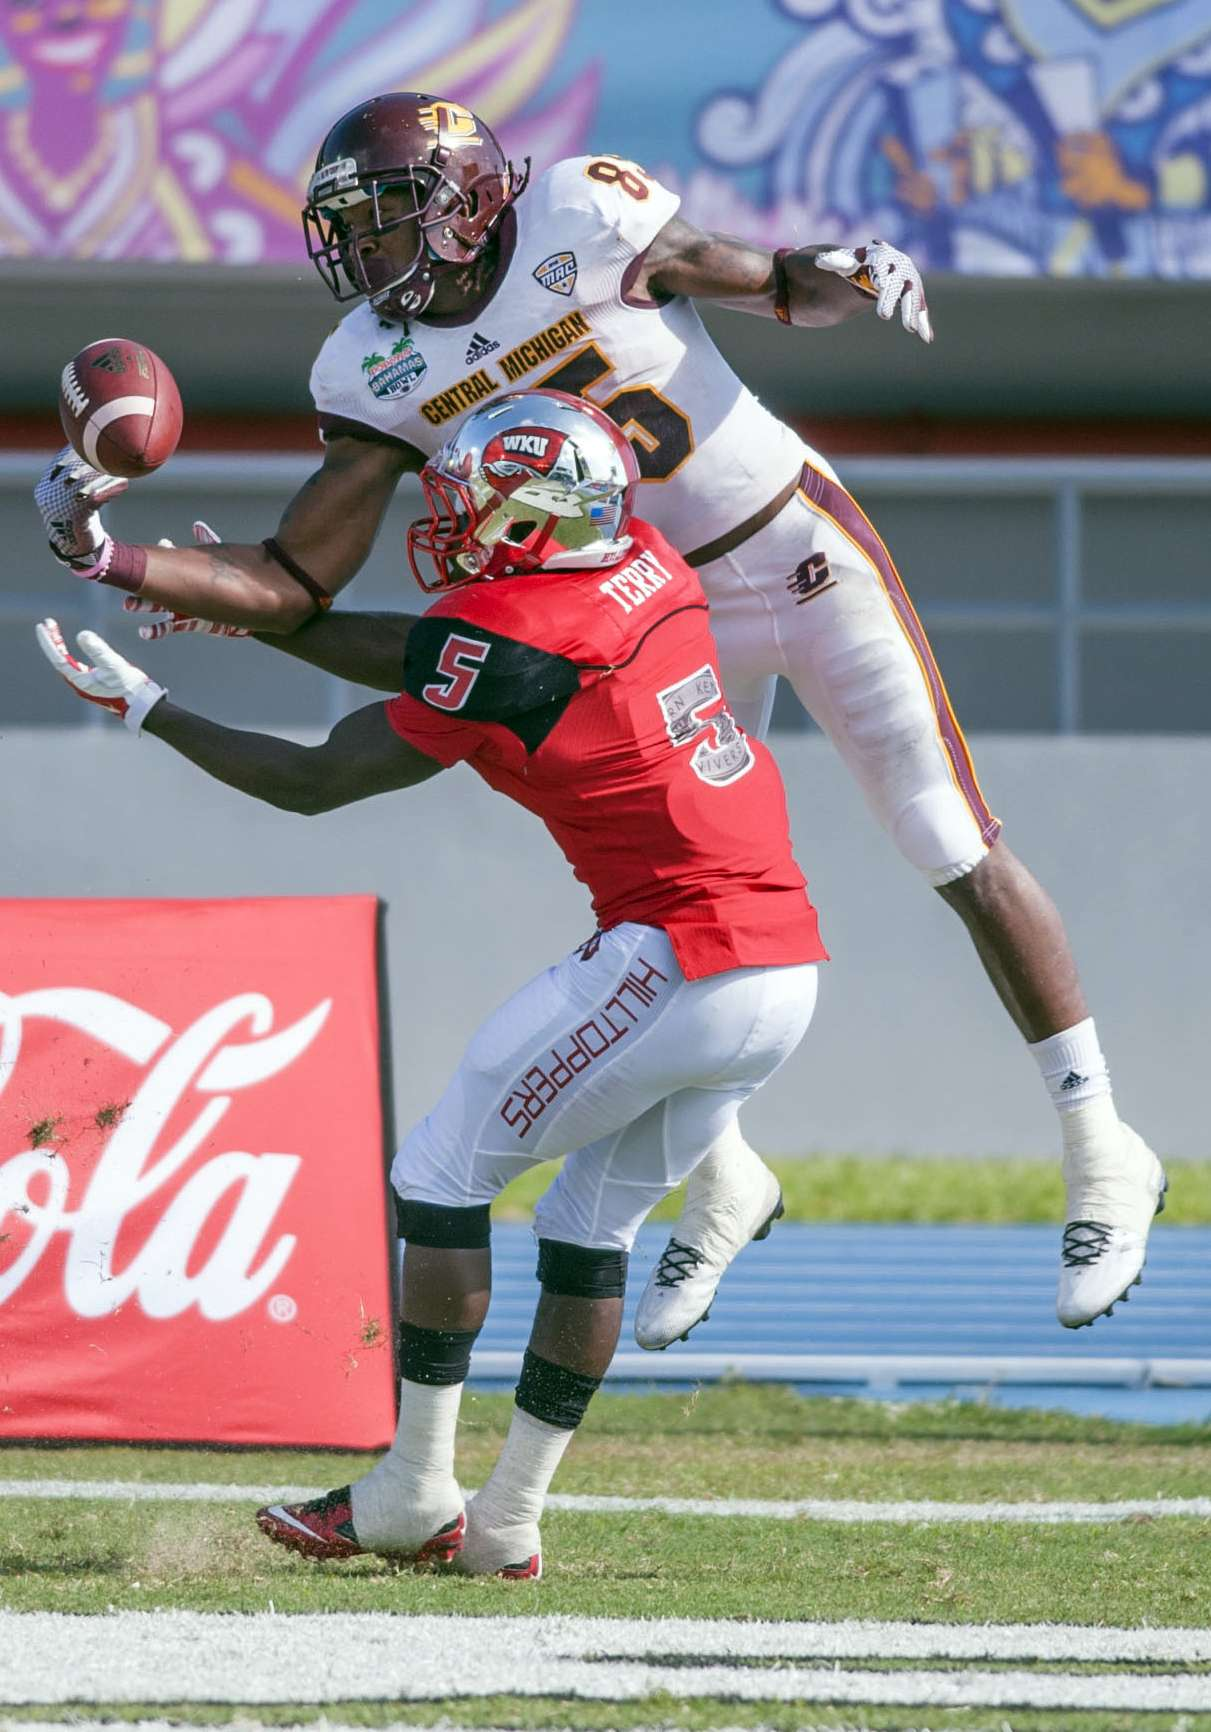 Western Kentucky superó a Central Michigan 49-48 en el primer Bahamas Bowl Foto: AP